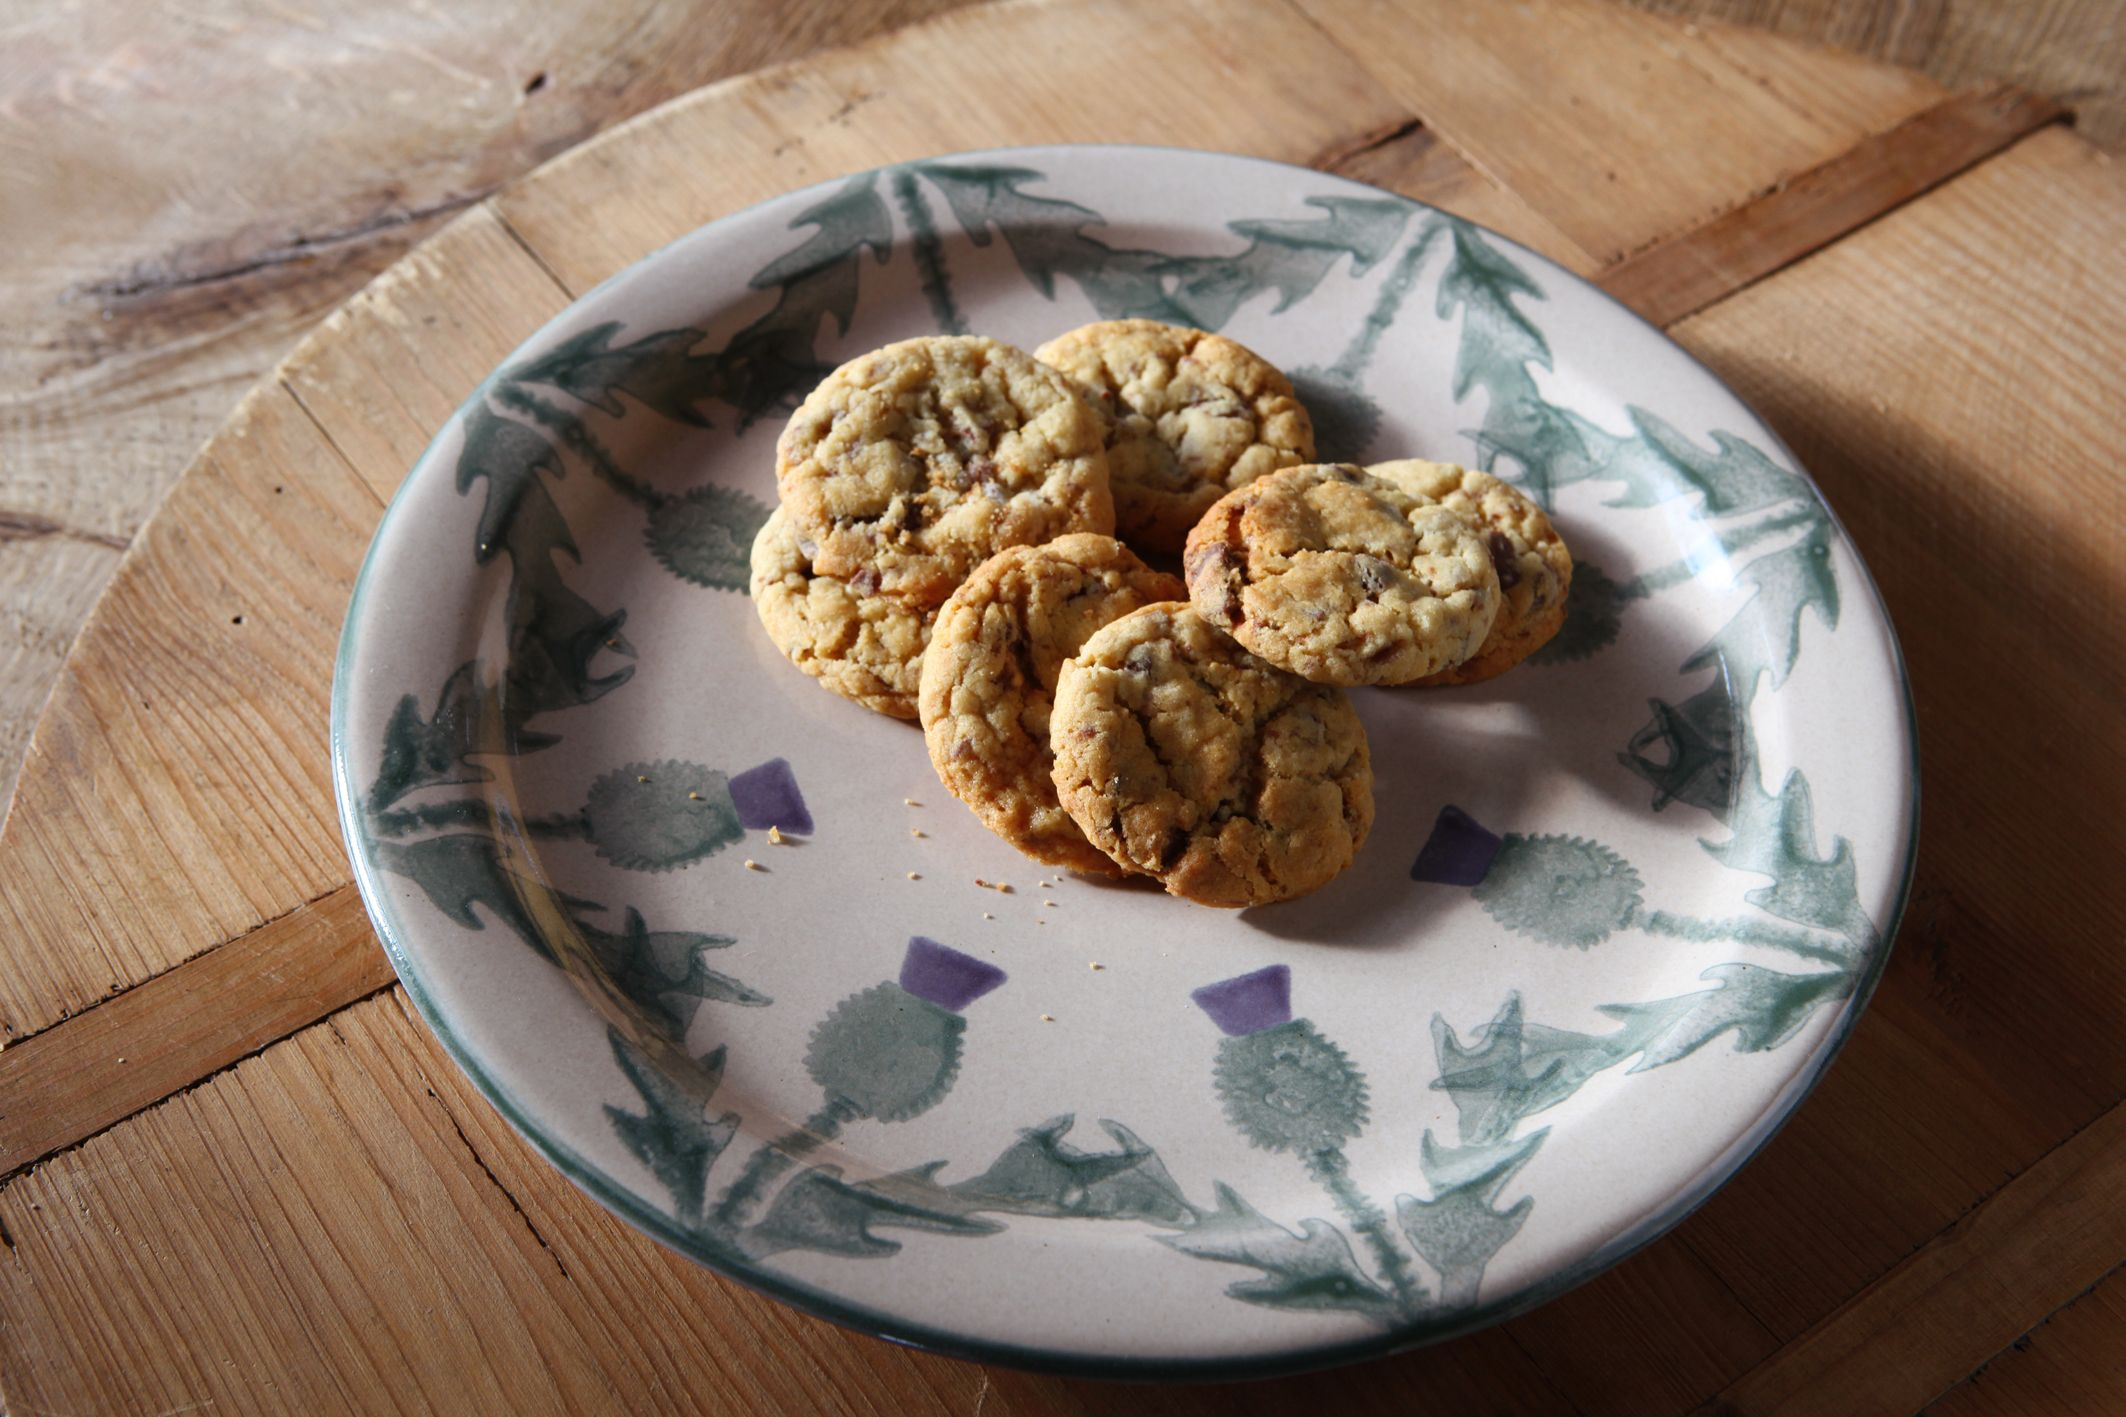 Chocolate chip cookies served on cream thistle stoneware